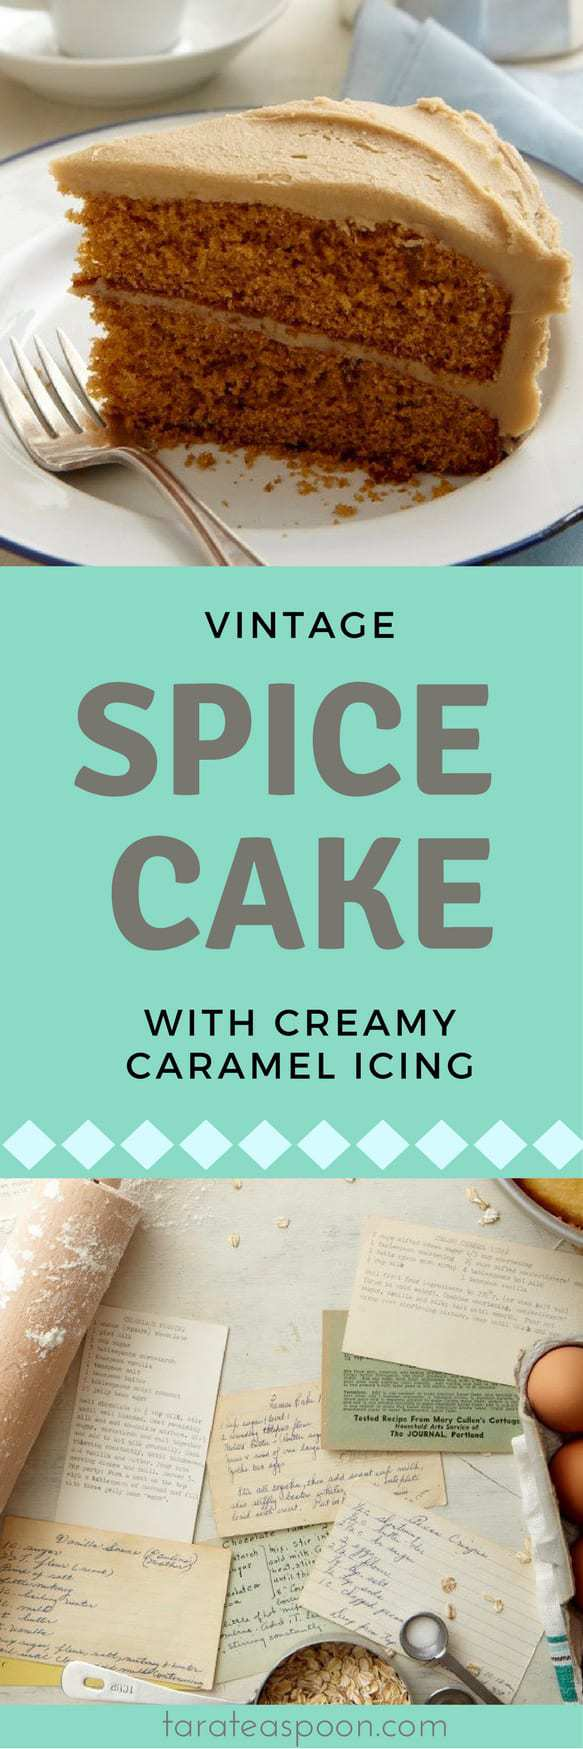 spice cake long pin